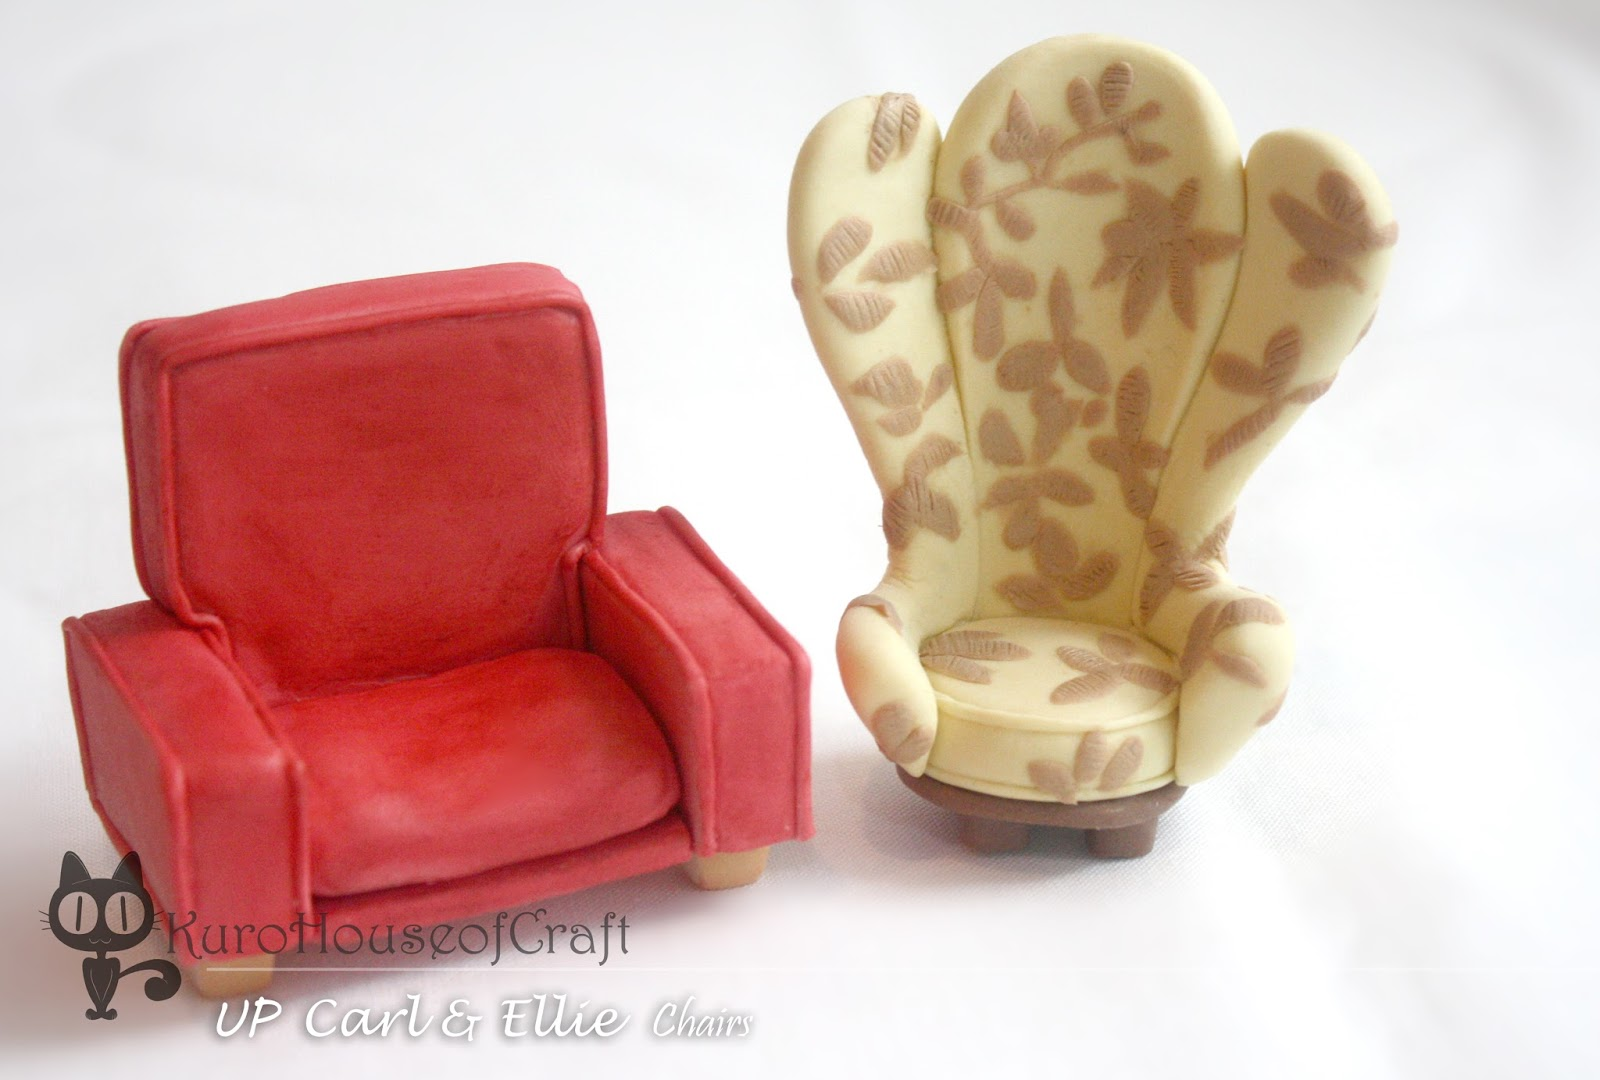 UP Carls And Ellie Chairs